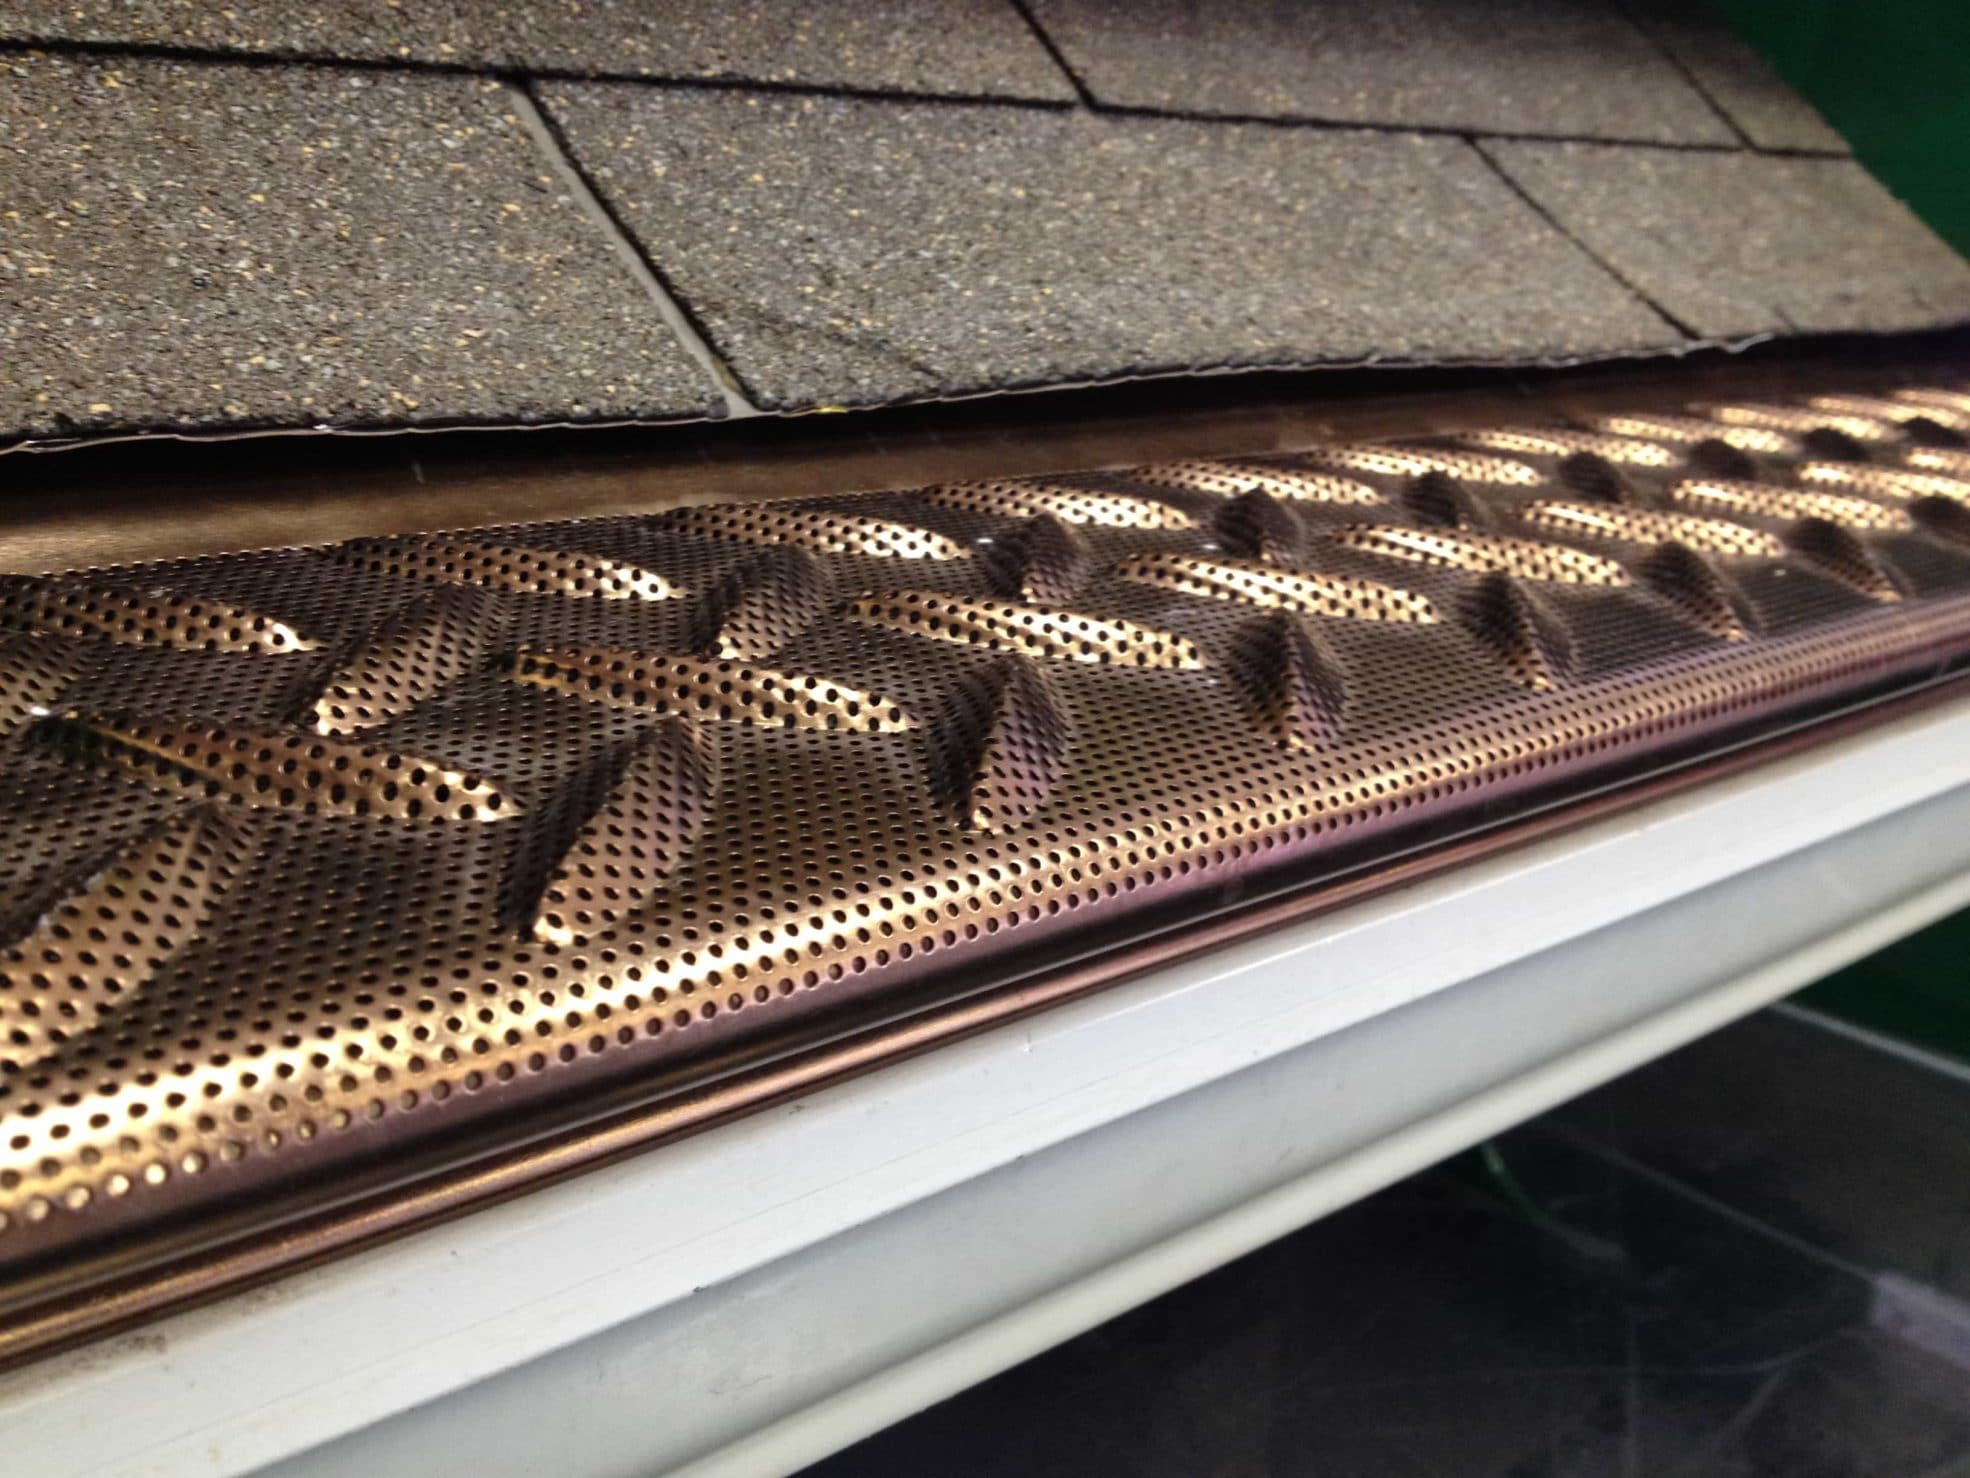 Tek-Mesh Guard protector for Gutters